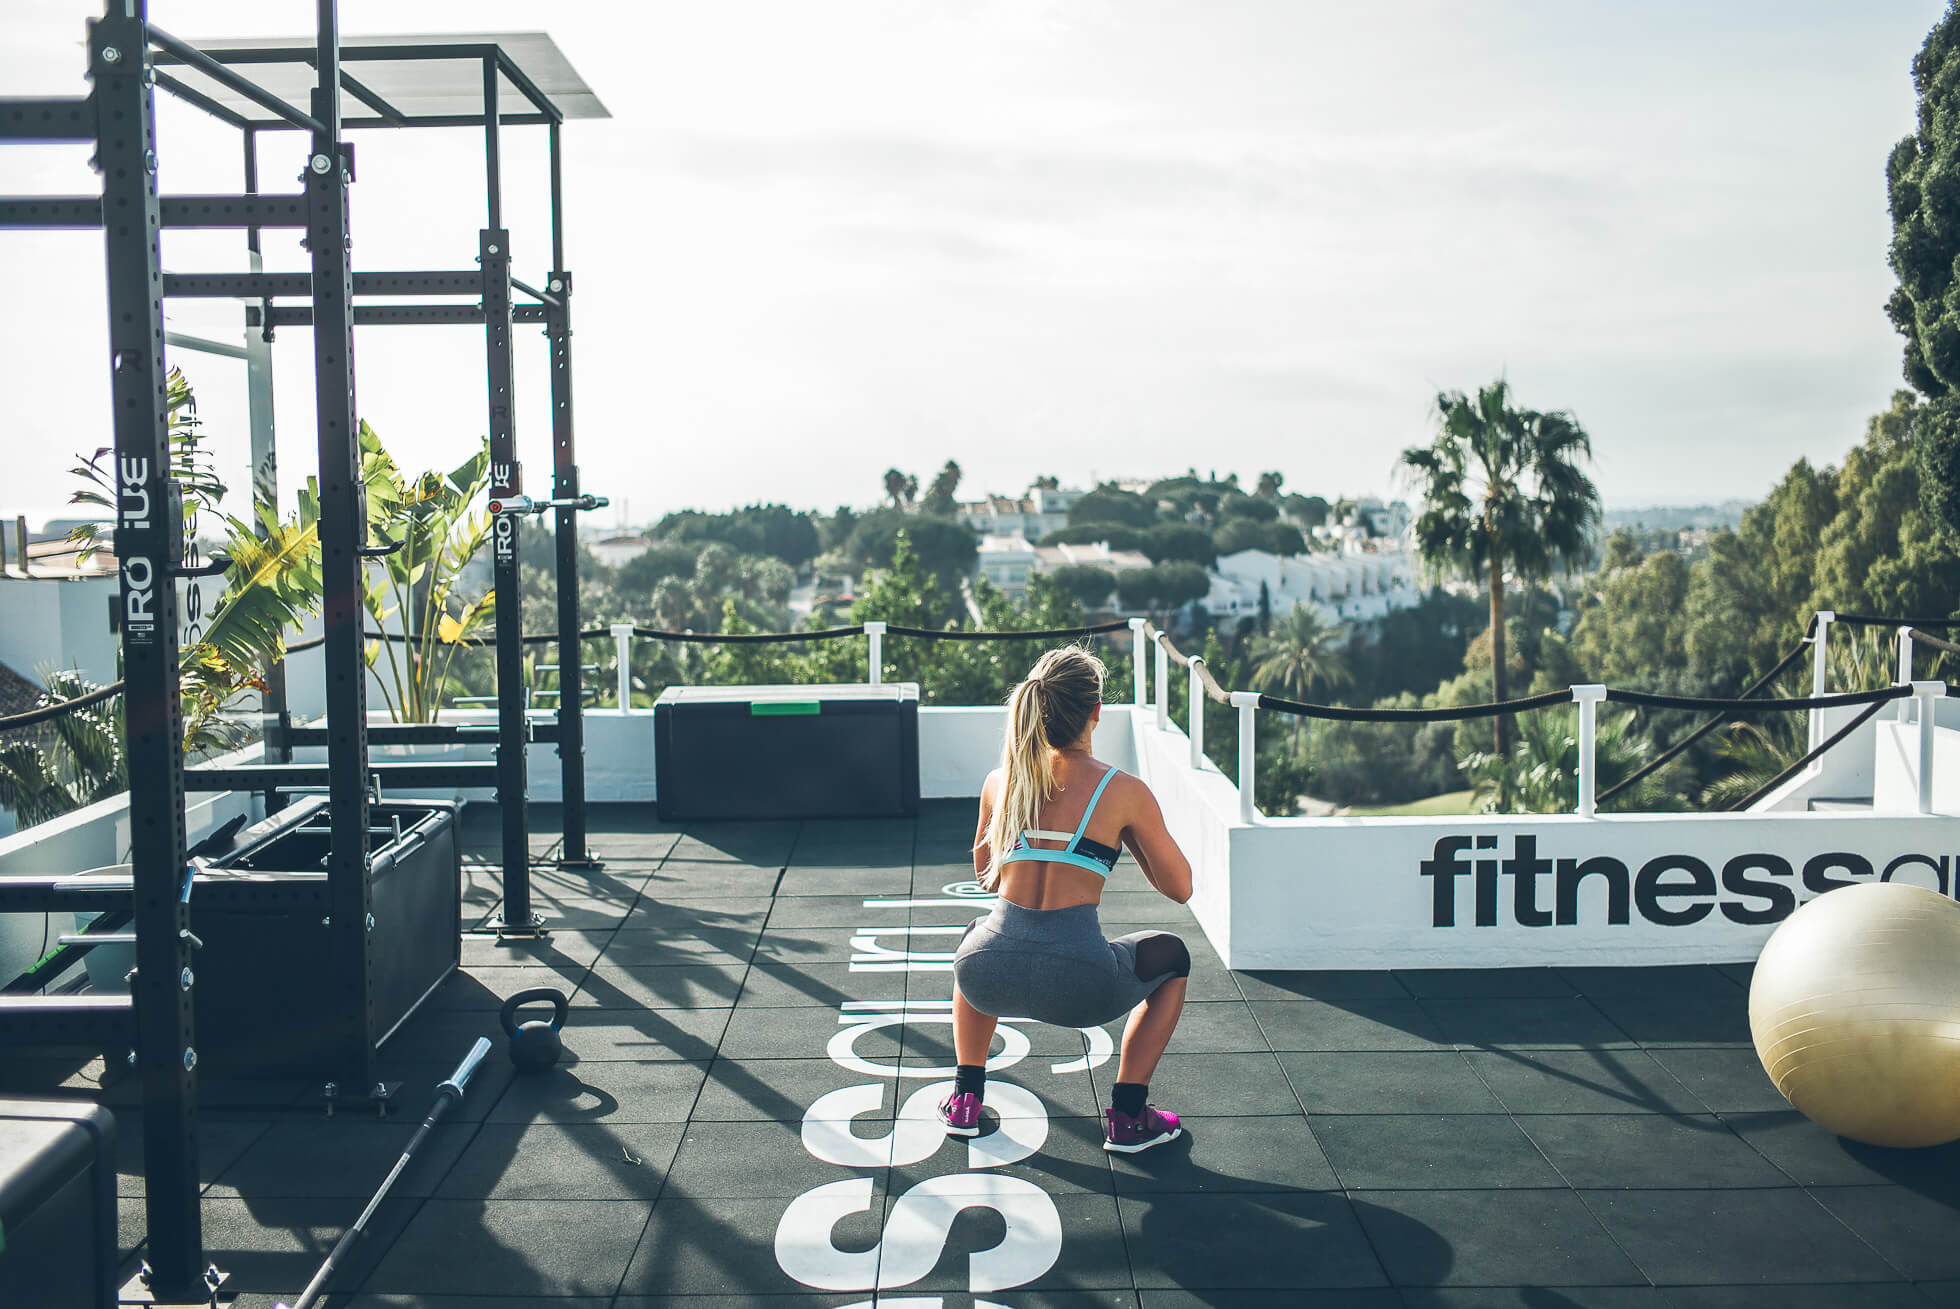 janni-deler-rooftop-workoutL1009041